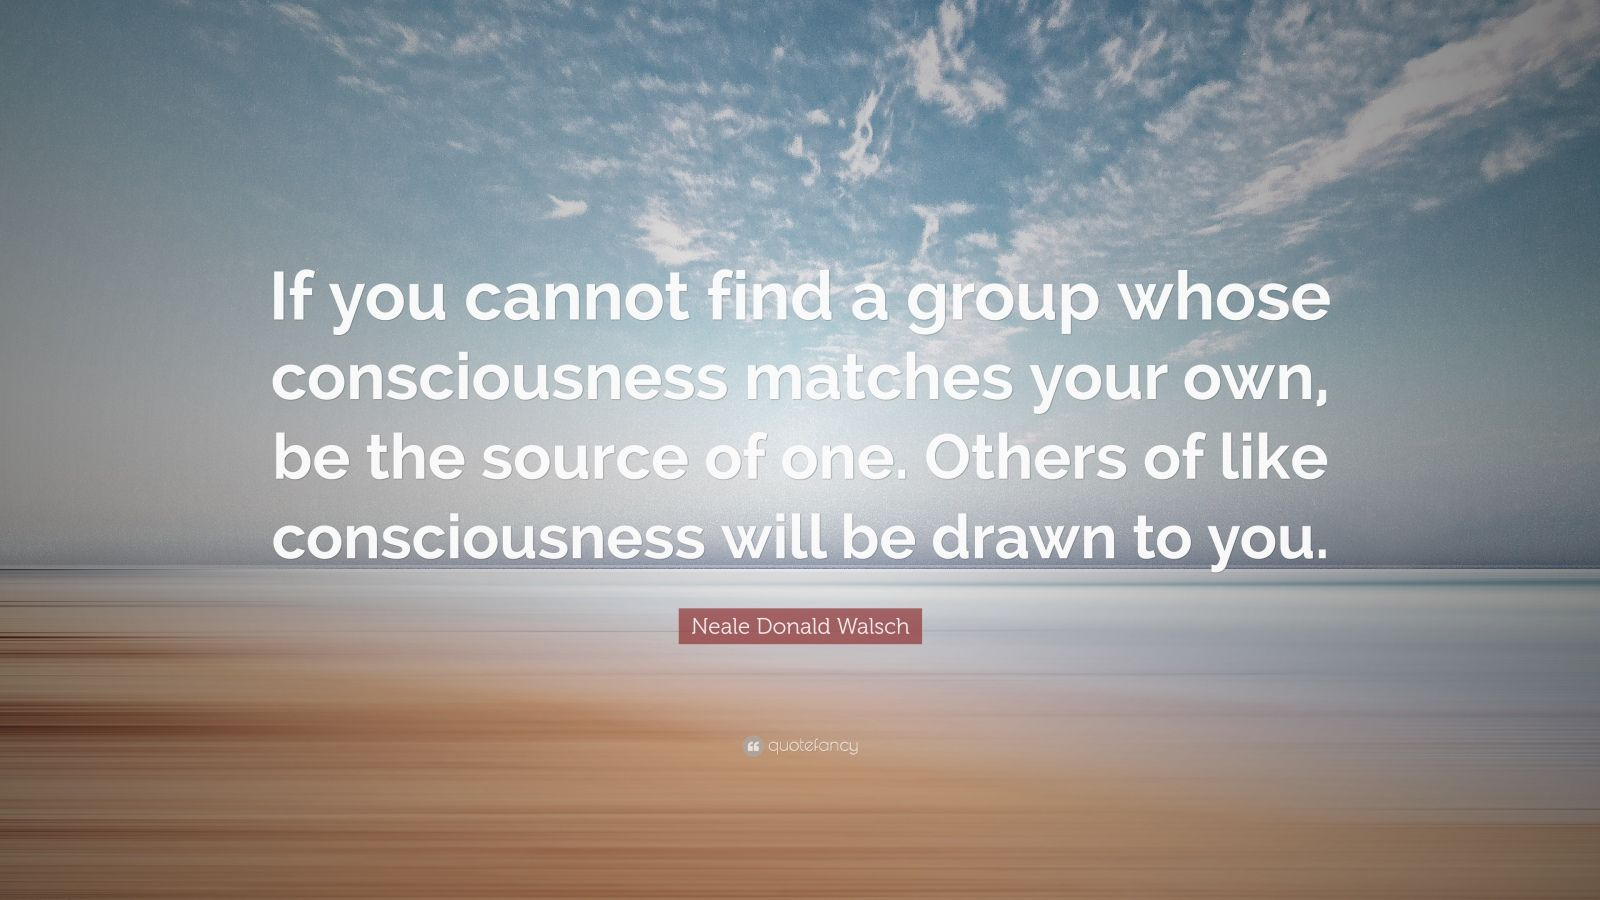 """Neale Donald Walsch Quote: """"If you cannot find a group whose consciousness matches your own, be the source of one. Others of like consciousness will be drawn to you."""""""